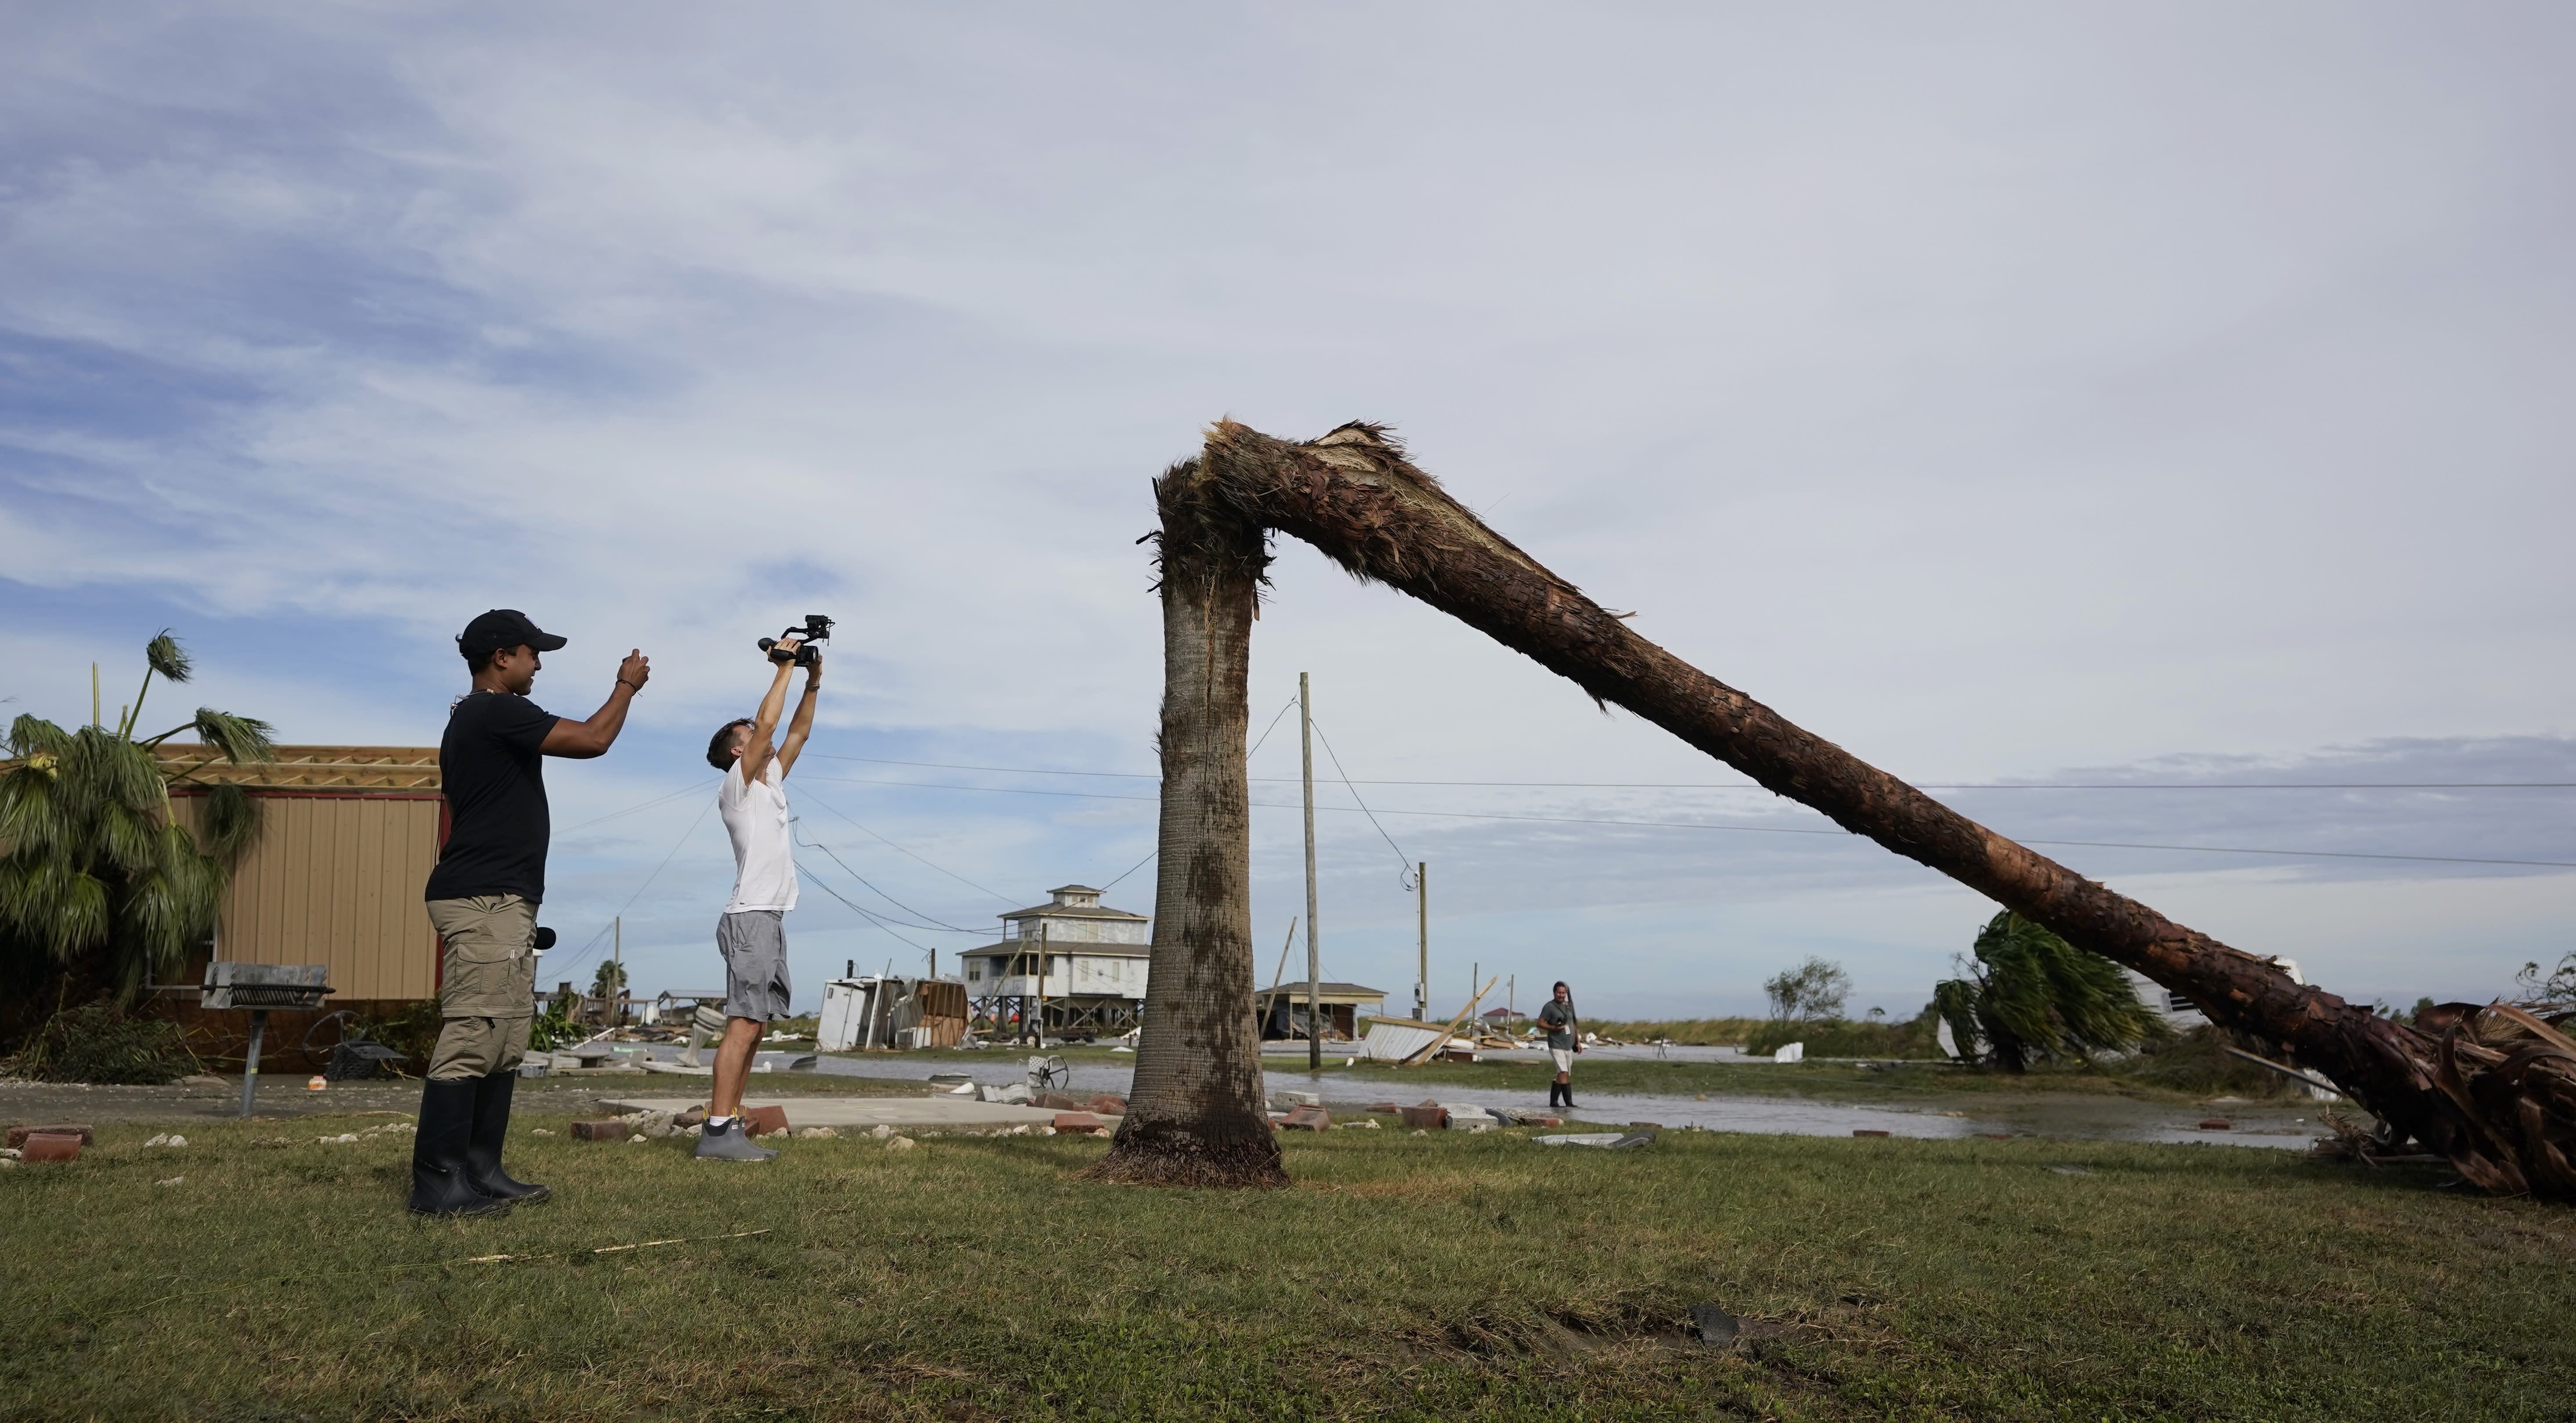 Journalists examine damage left in the wake of Hurricane Laura, Thursday, Aug. 27, 2020, in Holly Beach, La. (AP Photo/Eric Gay)